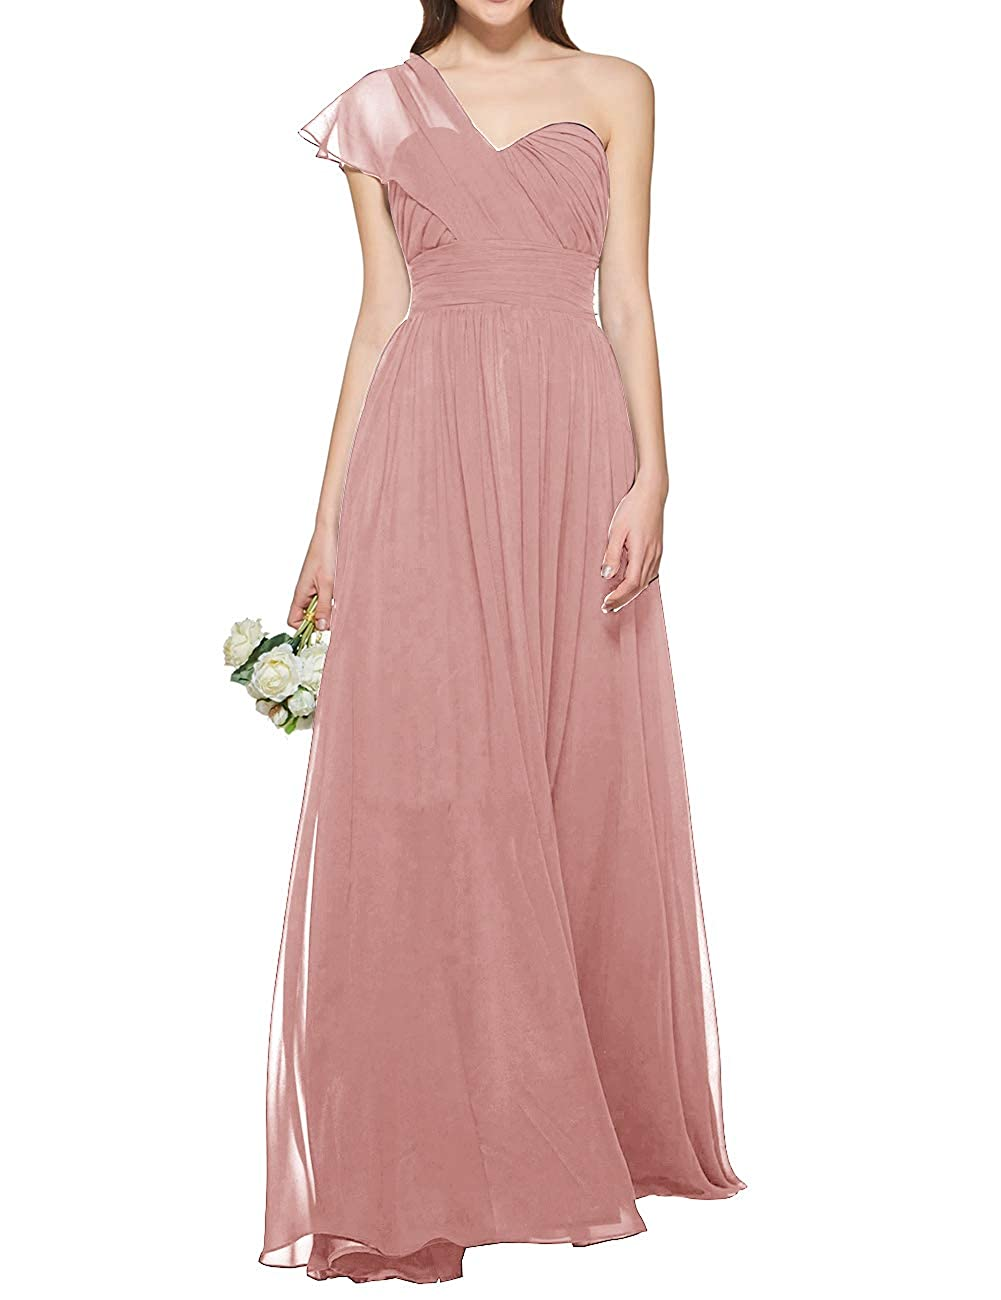 bluesh Uther Women's One Shoulder Bridesmaid Dress Long Prom Evening Gown A Line